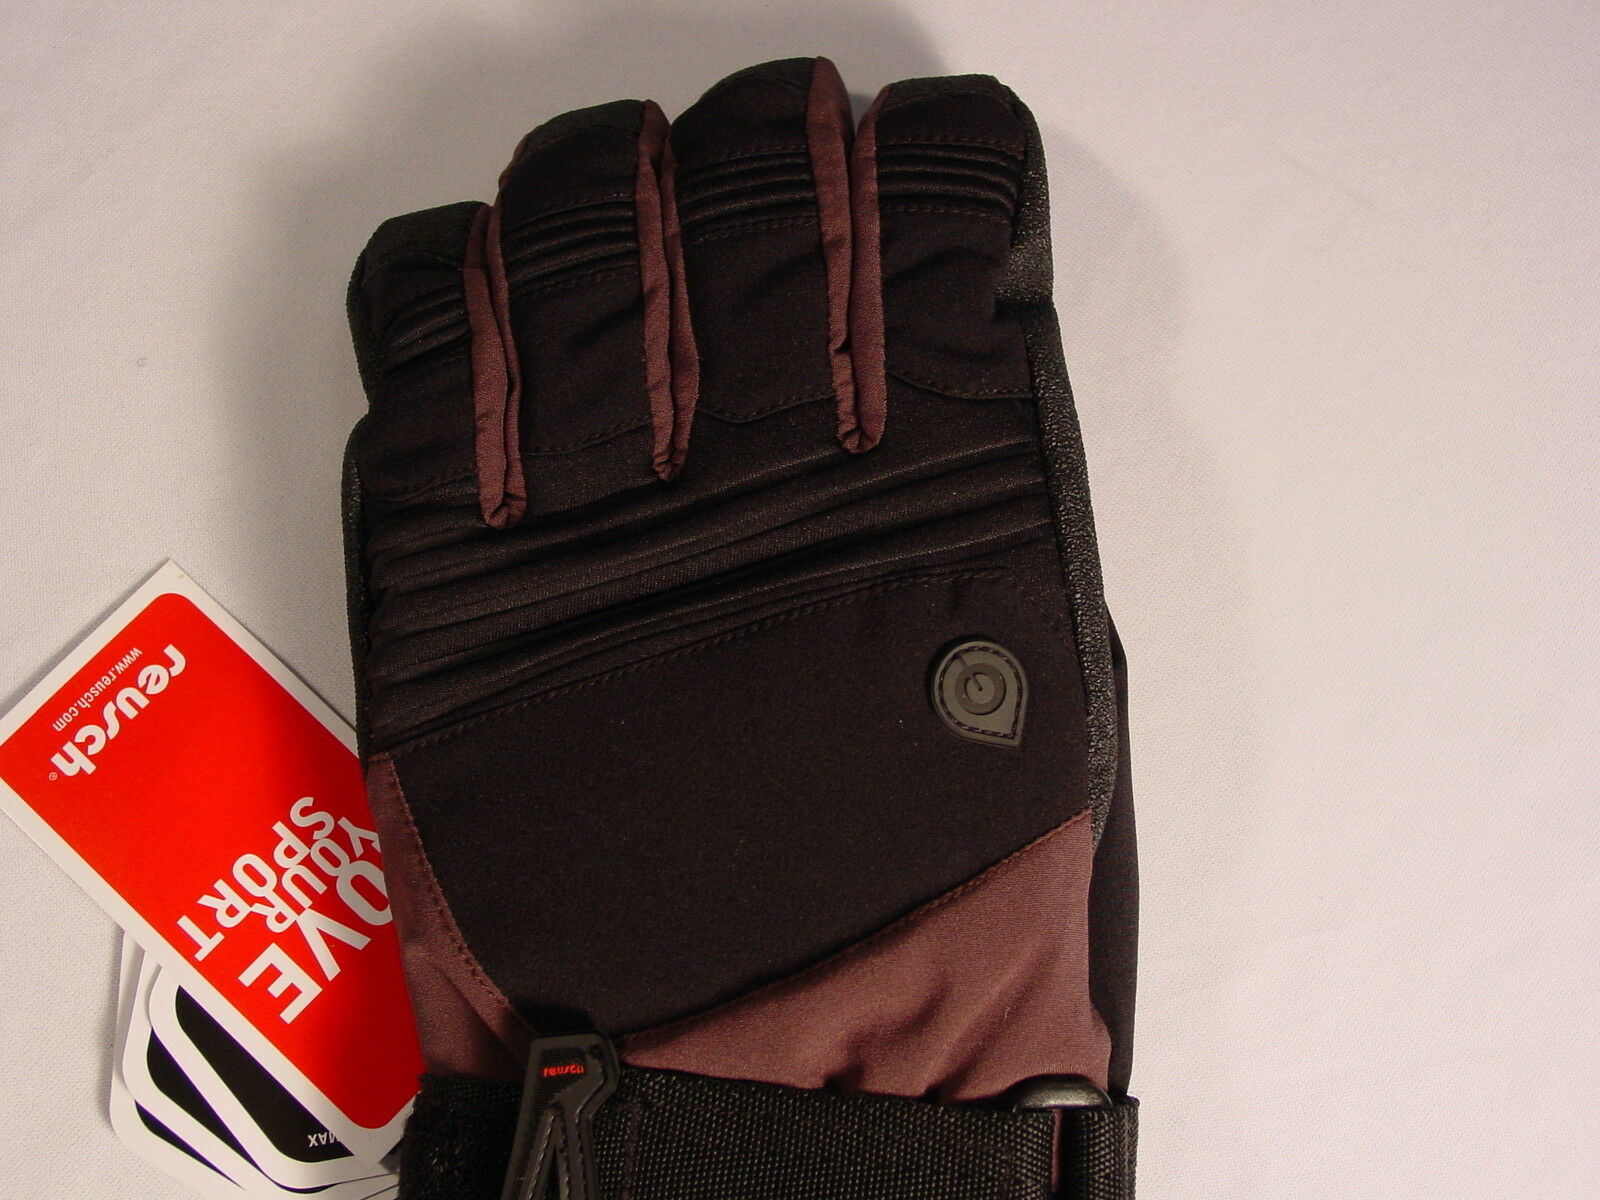 Reusch Wrist Brace Protection Board Softshell Gloves Med 8.5 8.5 8.5 Vert Rtex 2904203 083c58